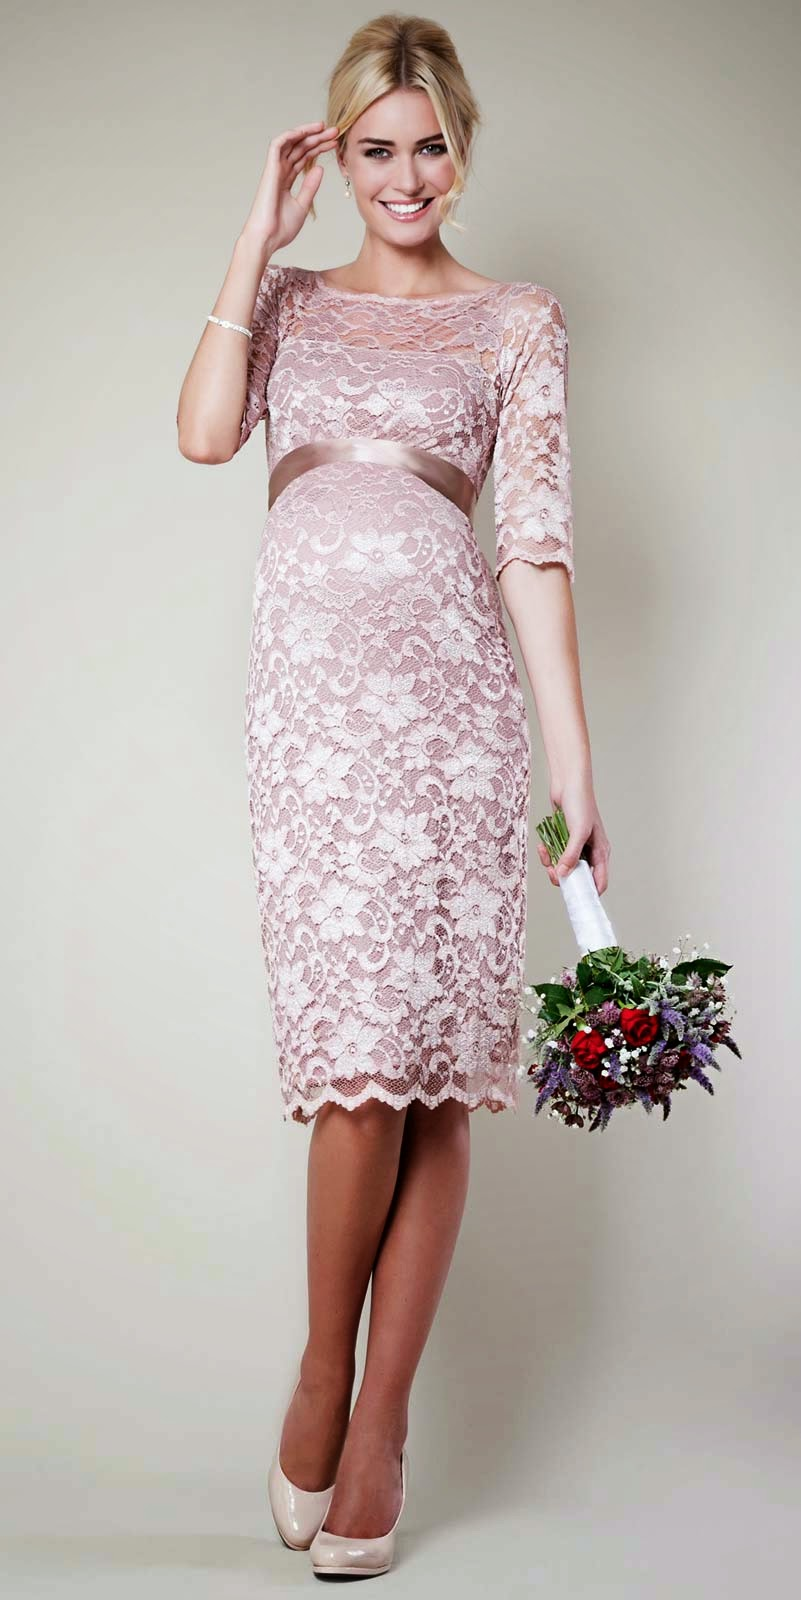 Designer Trendy Pink Maternity Wedding Dresses Photos HD Ideas